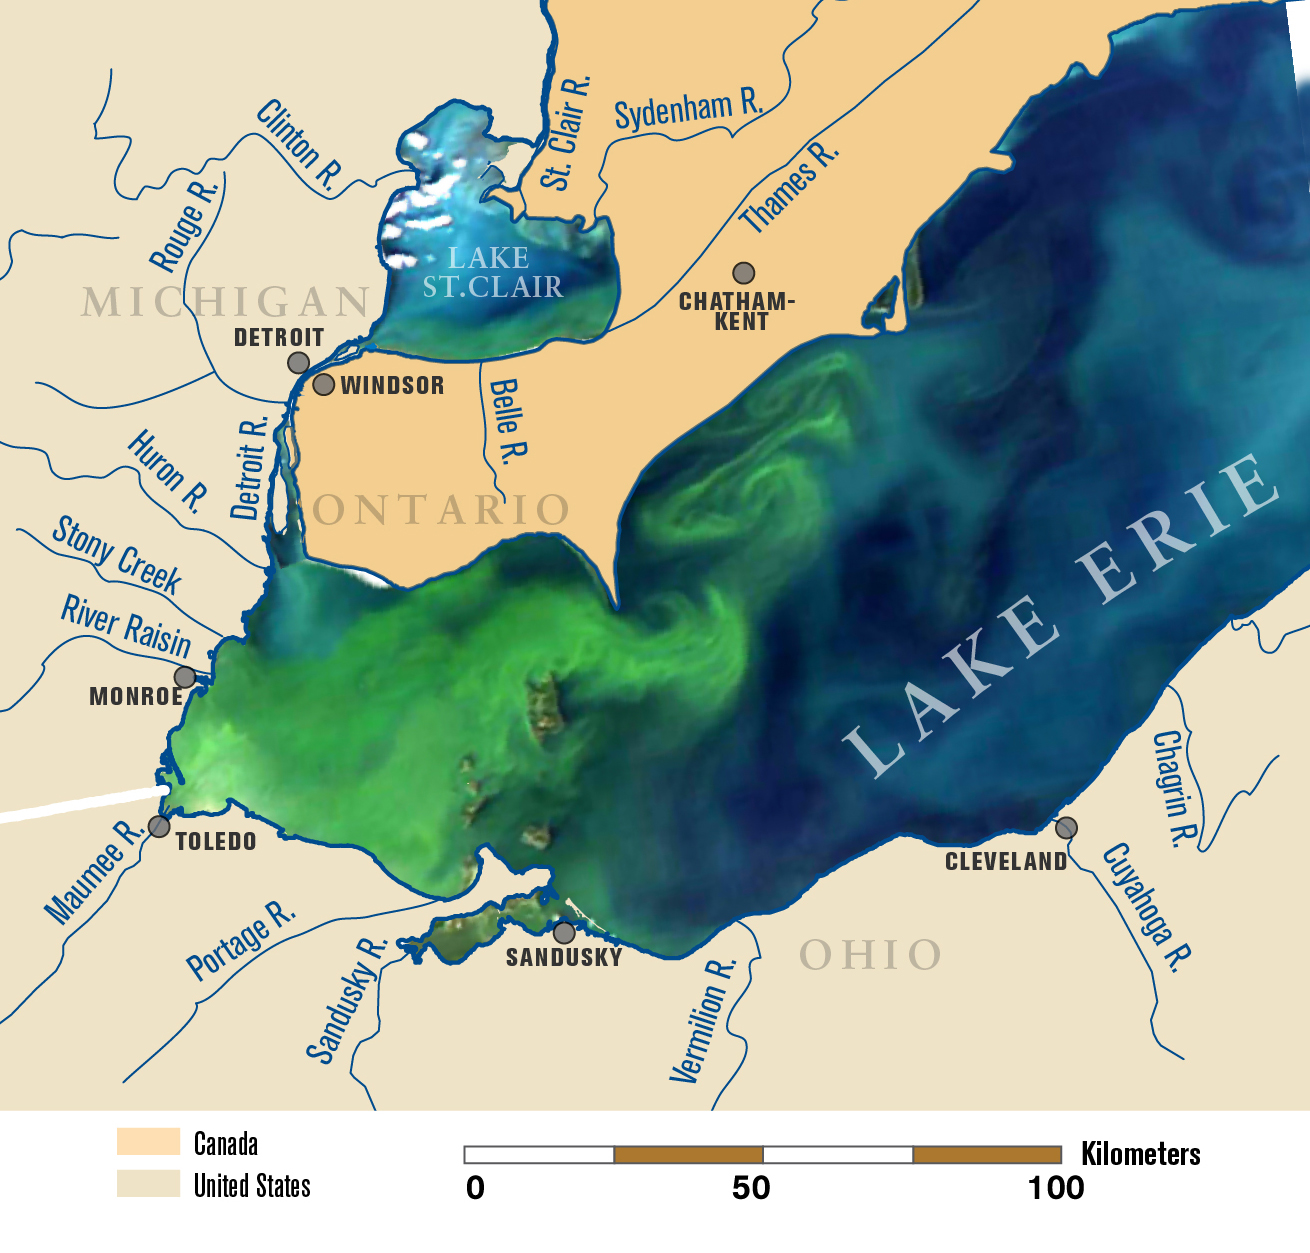 drone chart with Lake Eries Record Breaking Algae Bloom Of 2011 May Be A Sign Of Things To  E on Kiwi Vocab How To Speak New Zillund also The Bloodbath Of B R5rb as well Projecting Growth And Economic Impact Inter  Things likewise Firewood Btu Chart as well 38043 Hokkaido Japan.